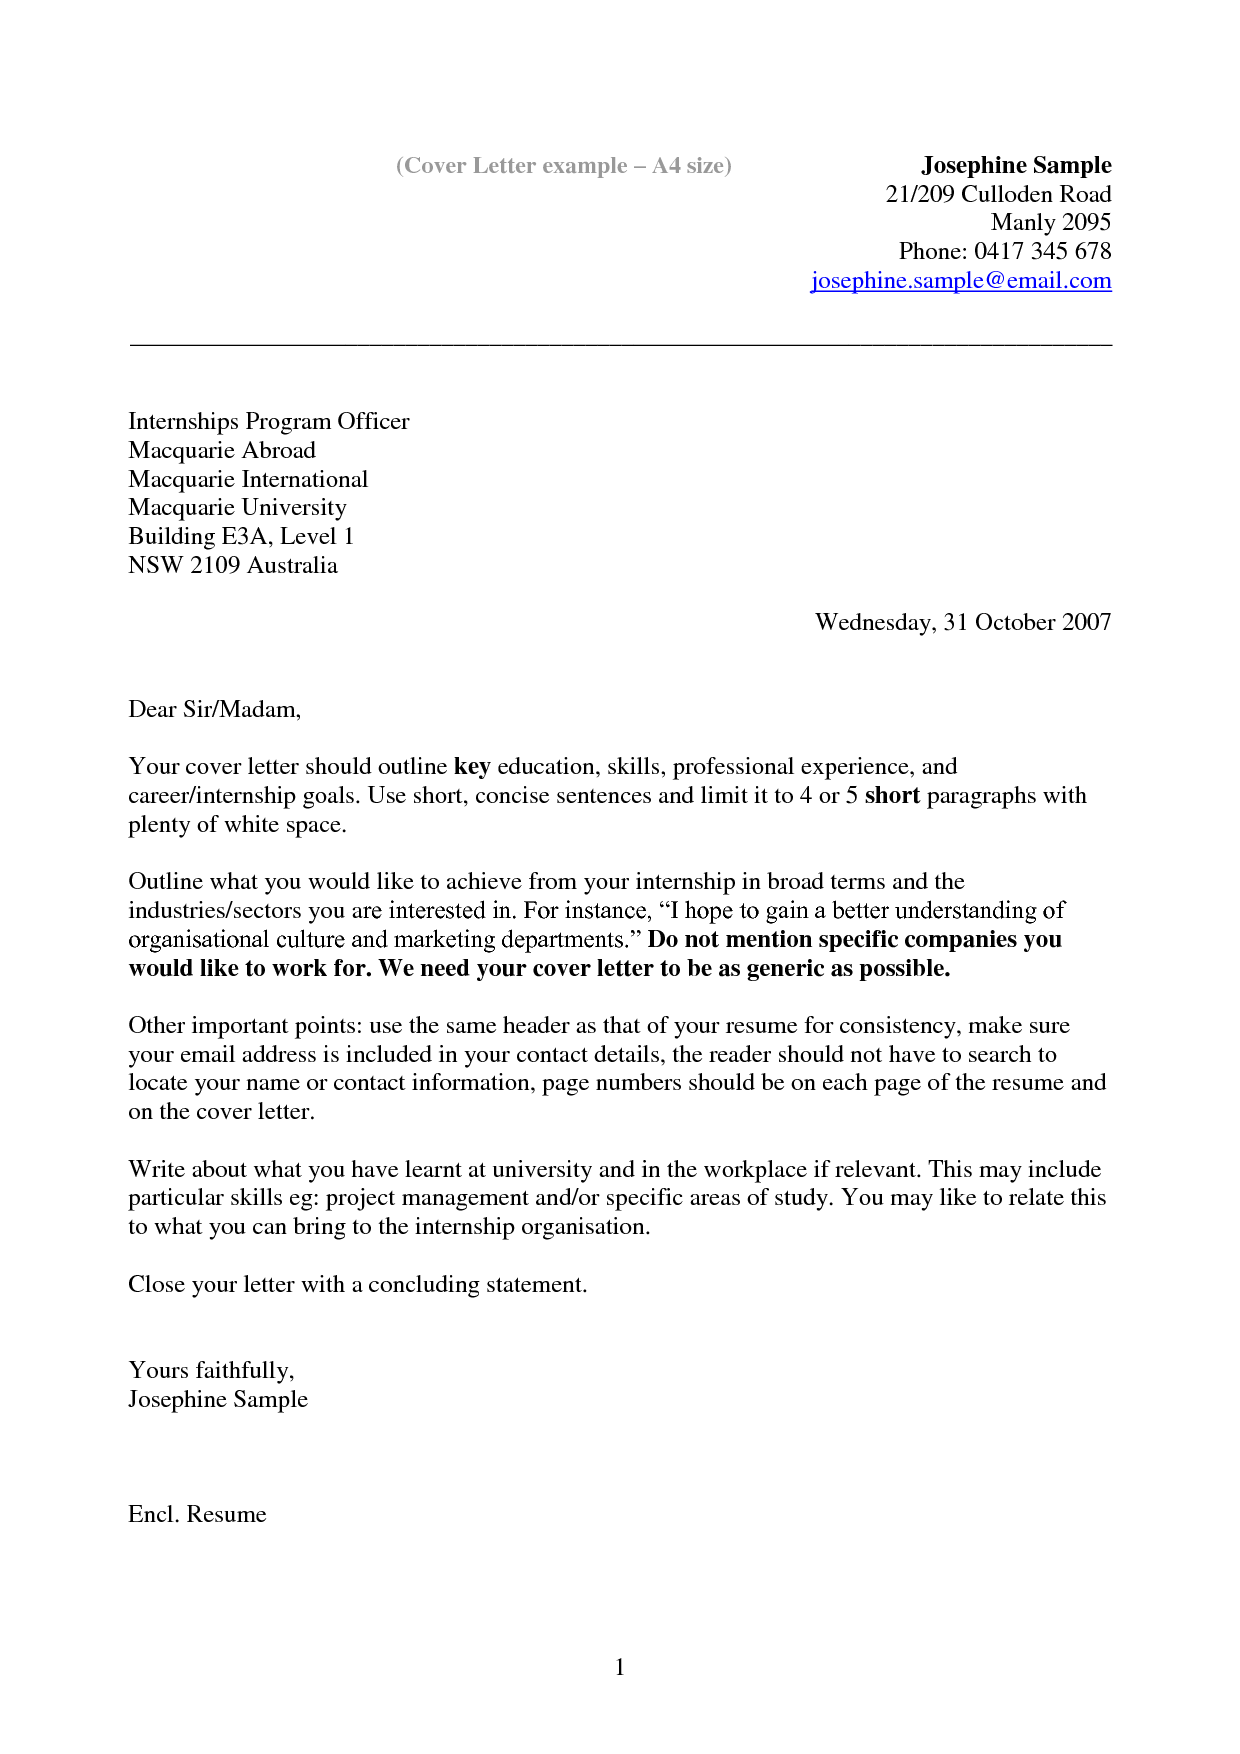 template letter job quote super funny quotes home design resume cv cover leter - Example Of Cv And Cover Letter